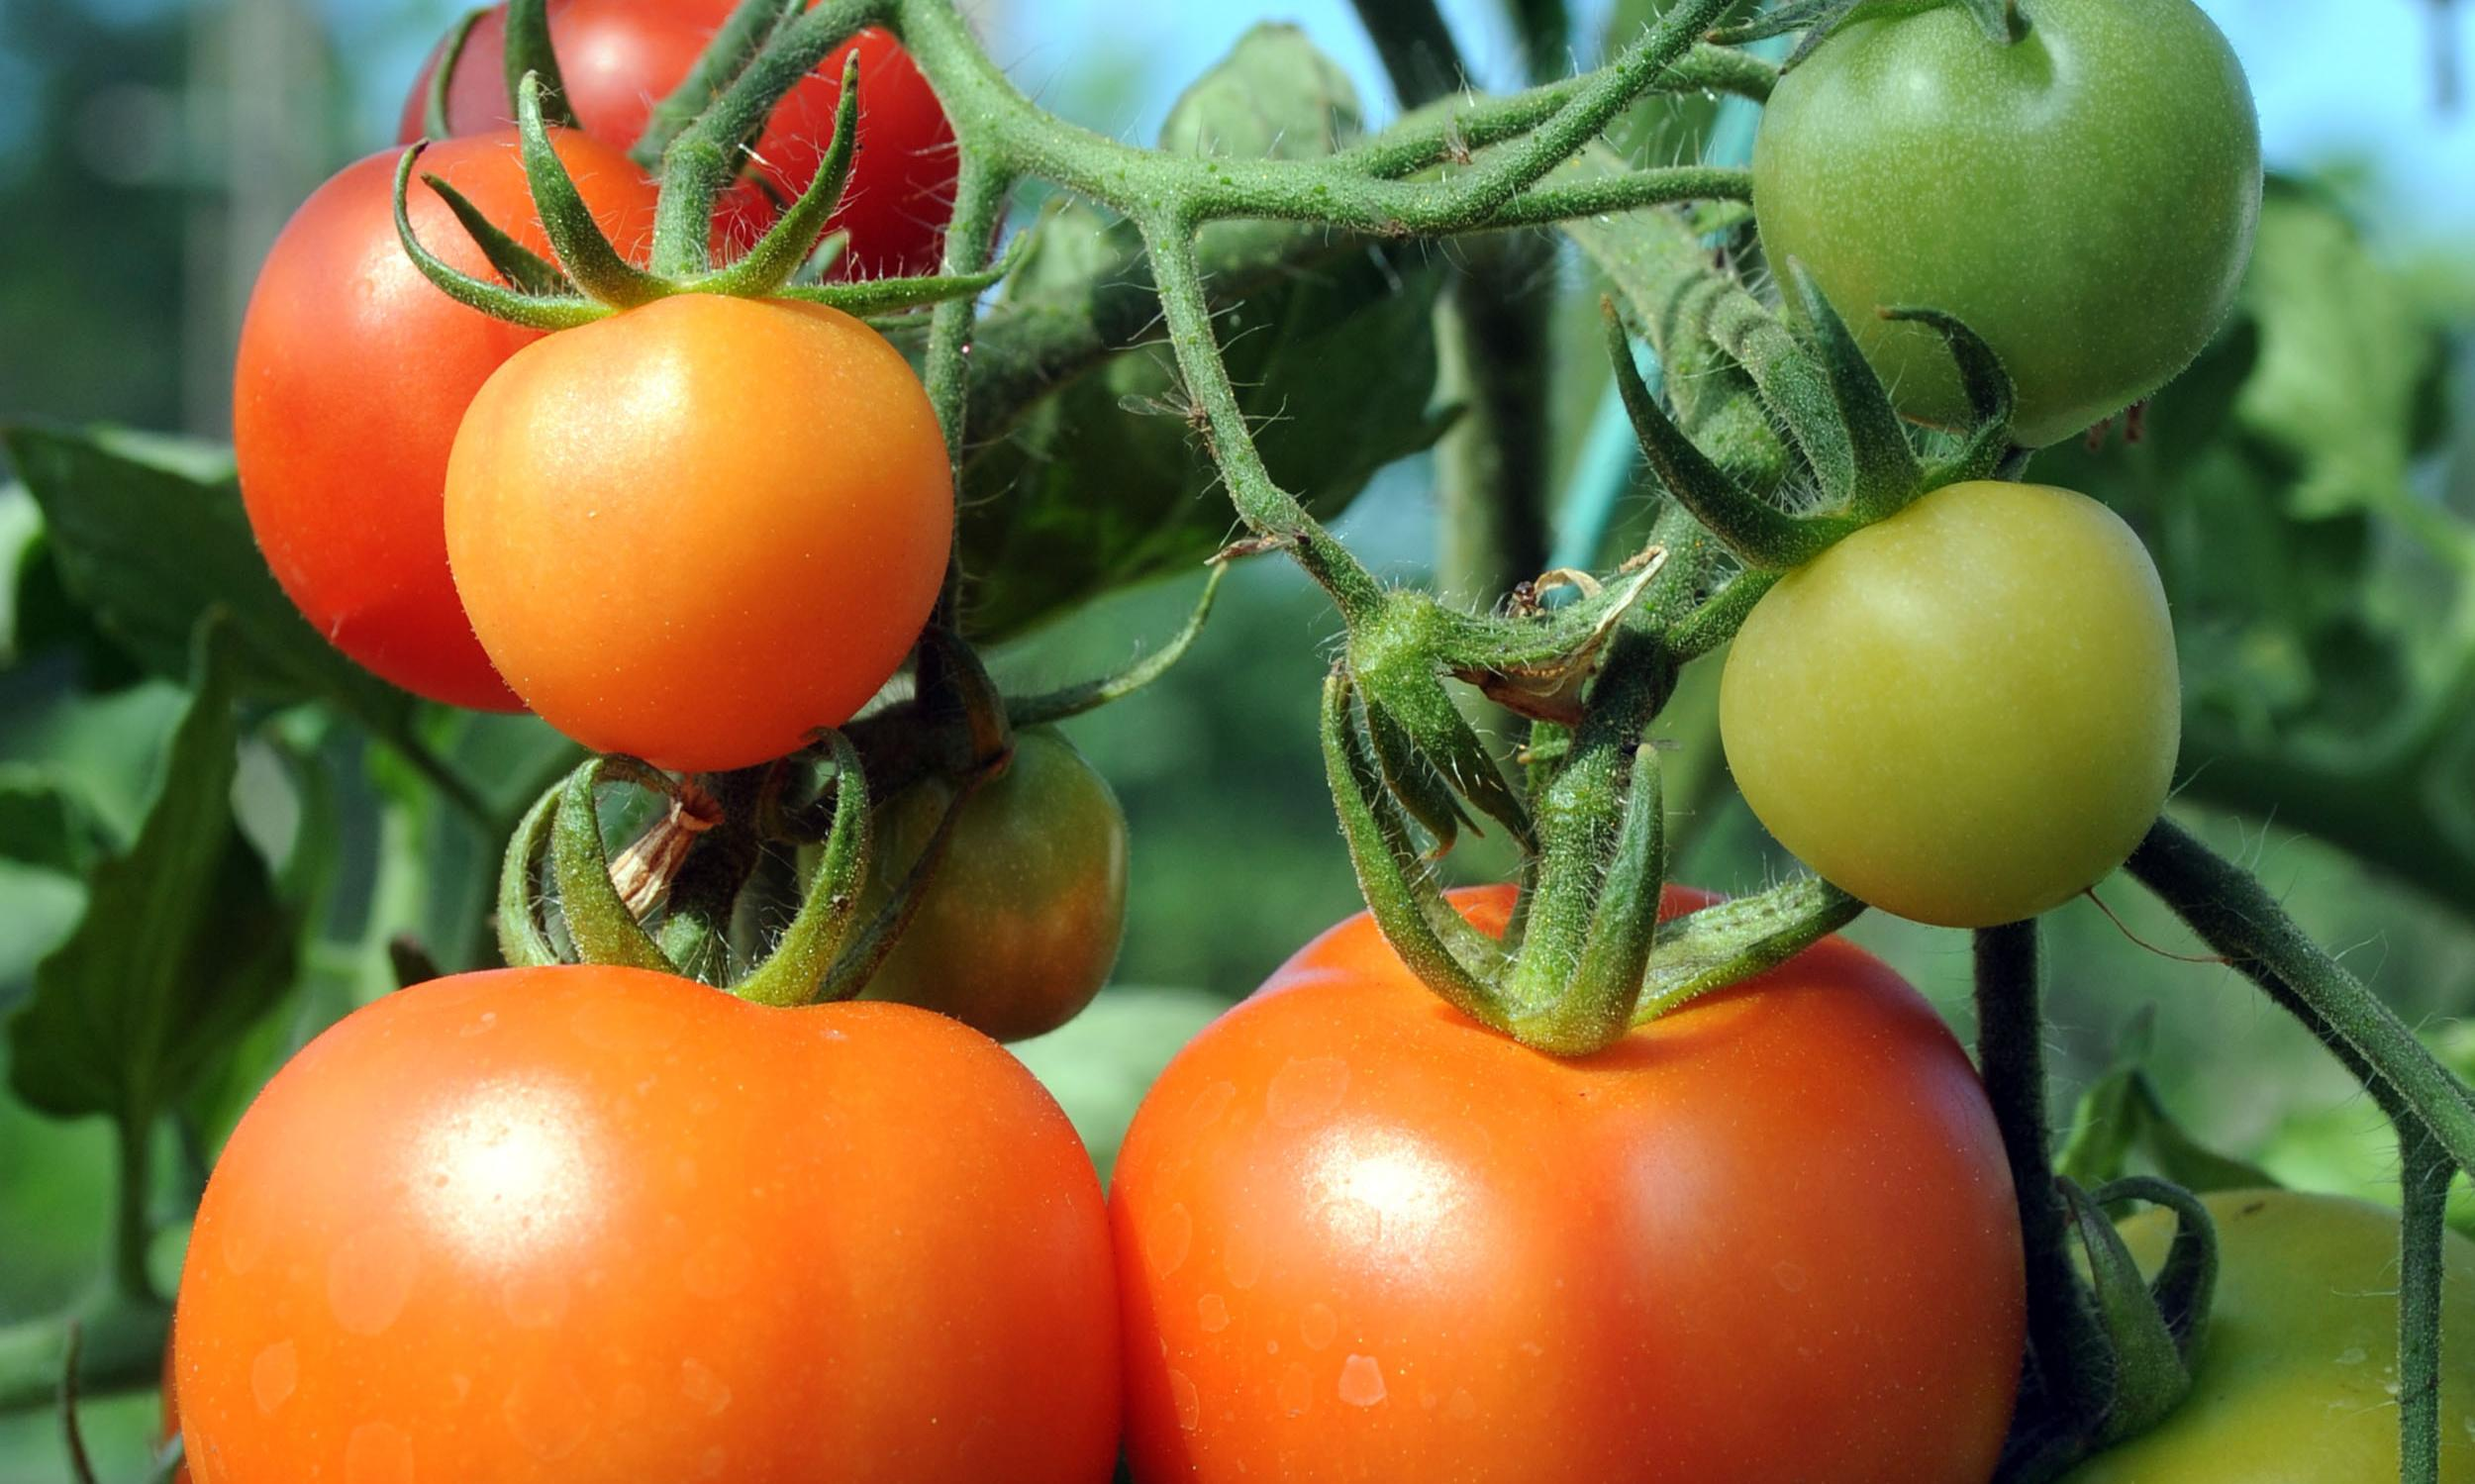 Gene editing could create spicy tomatoes, say researchers